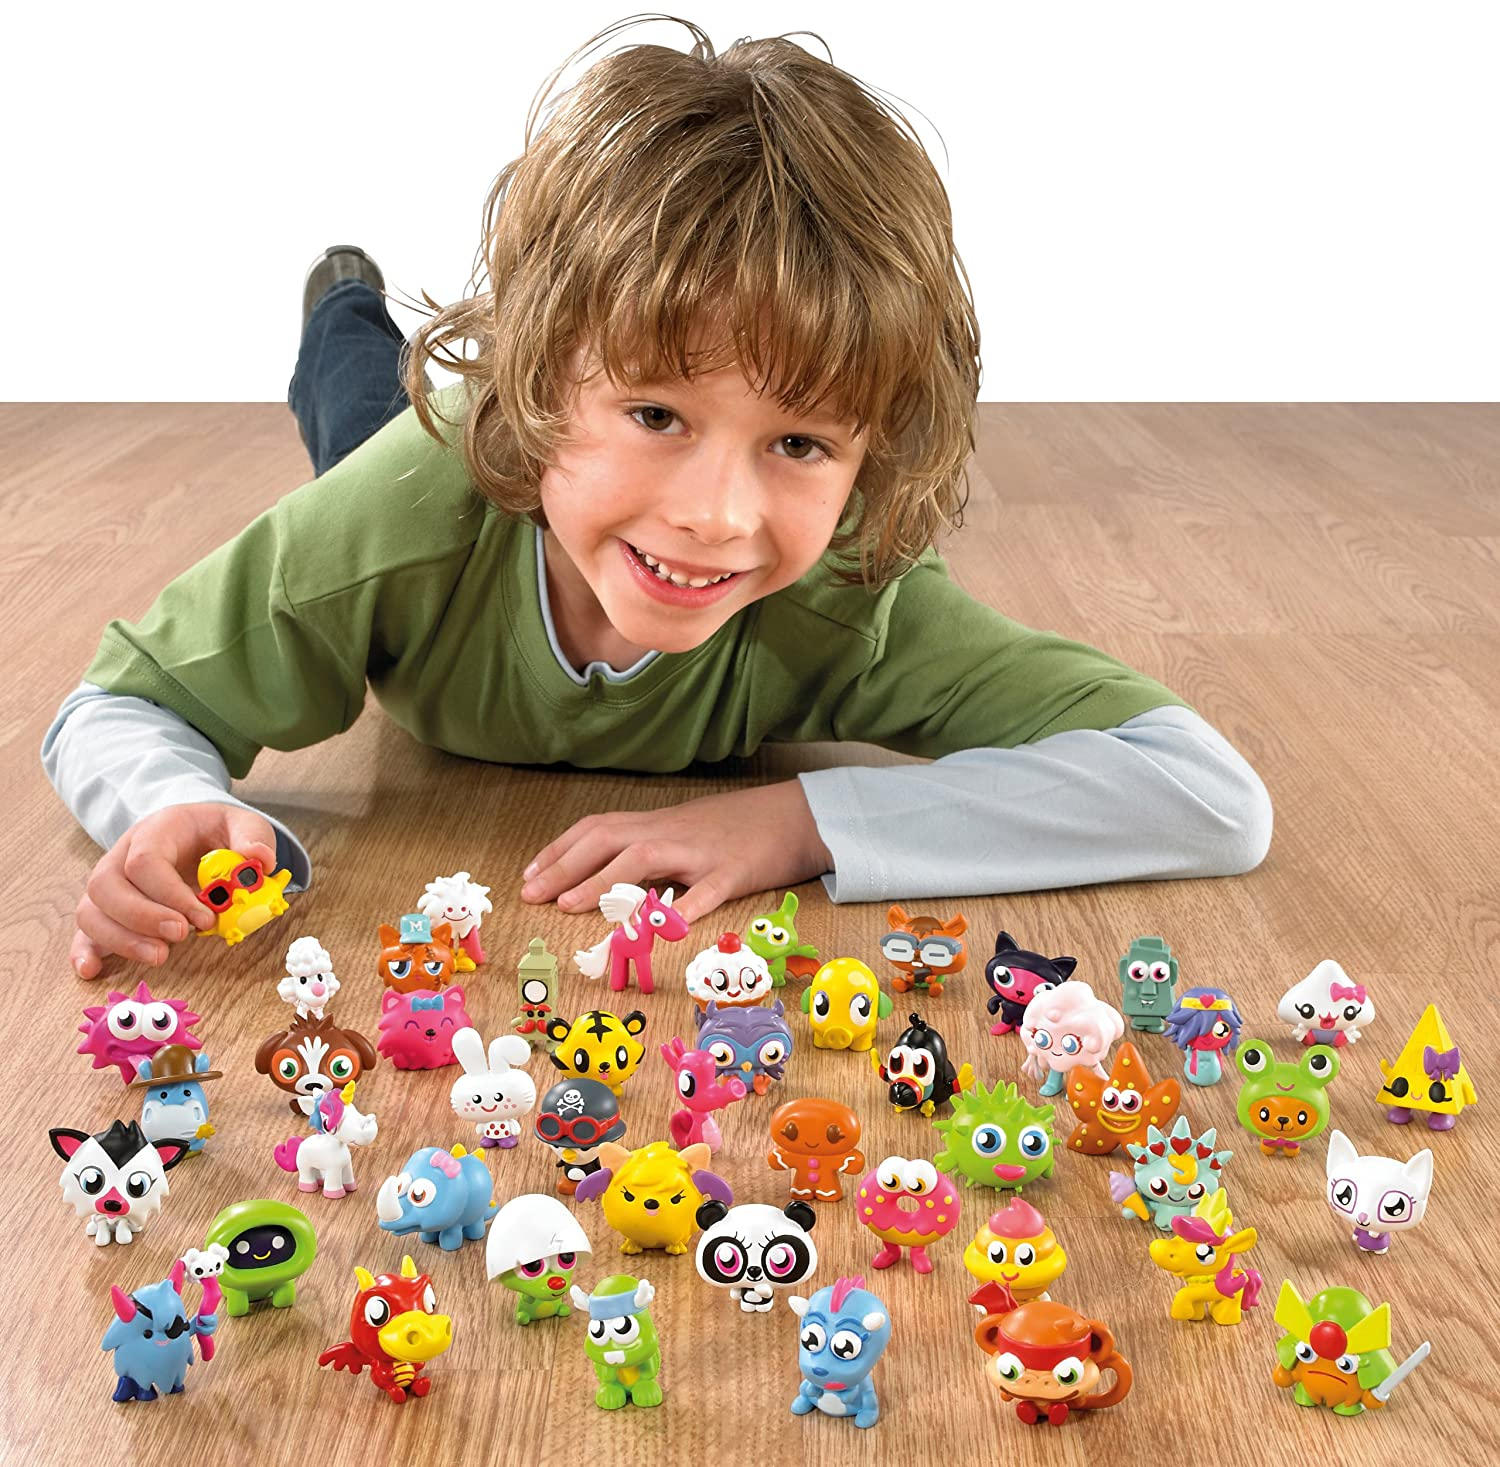 Amazon.com: Moshi Monsters Series 2 Moshling Collectible Figures: Toys & Games